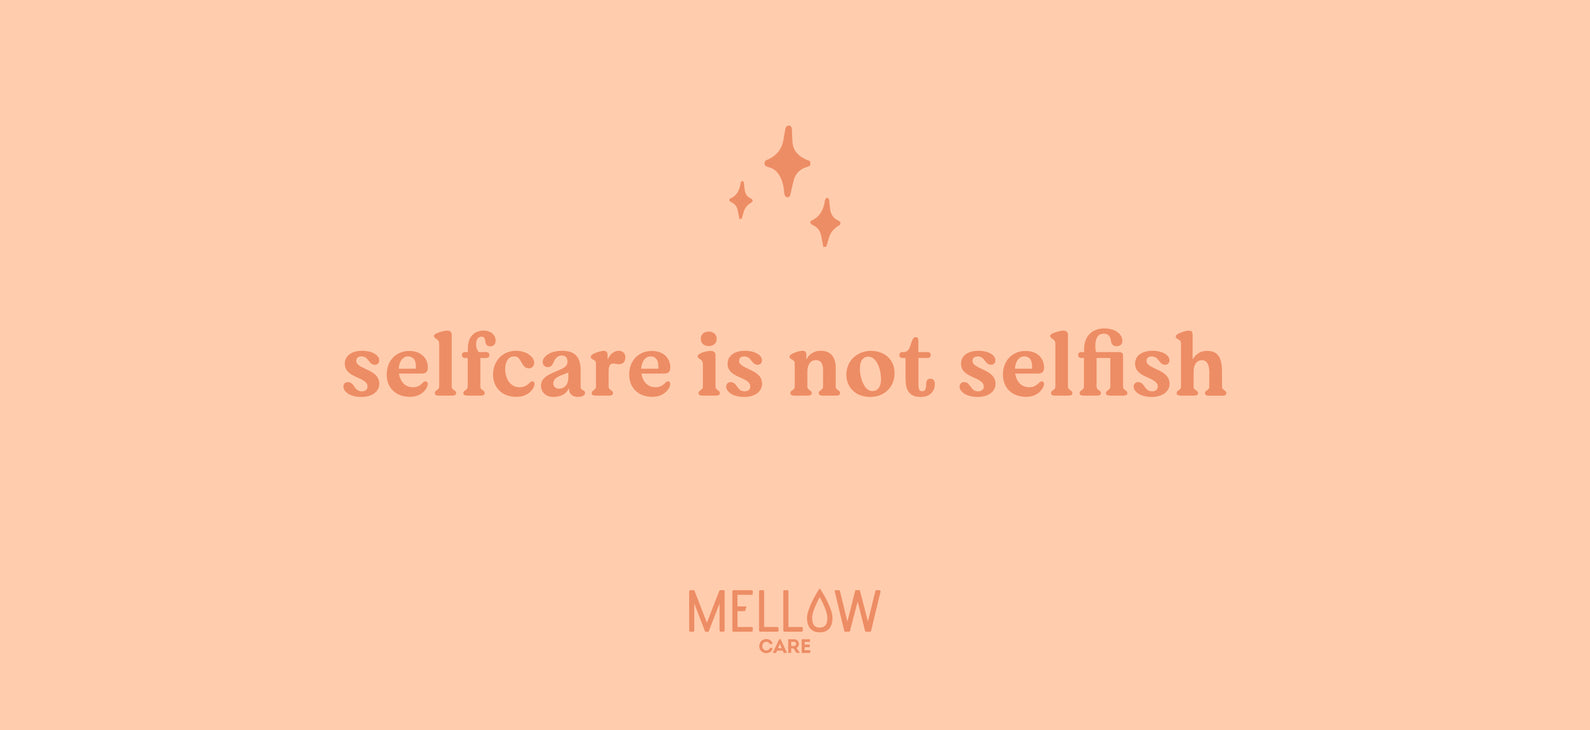 Mellow Care